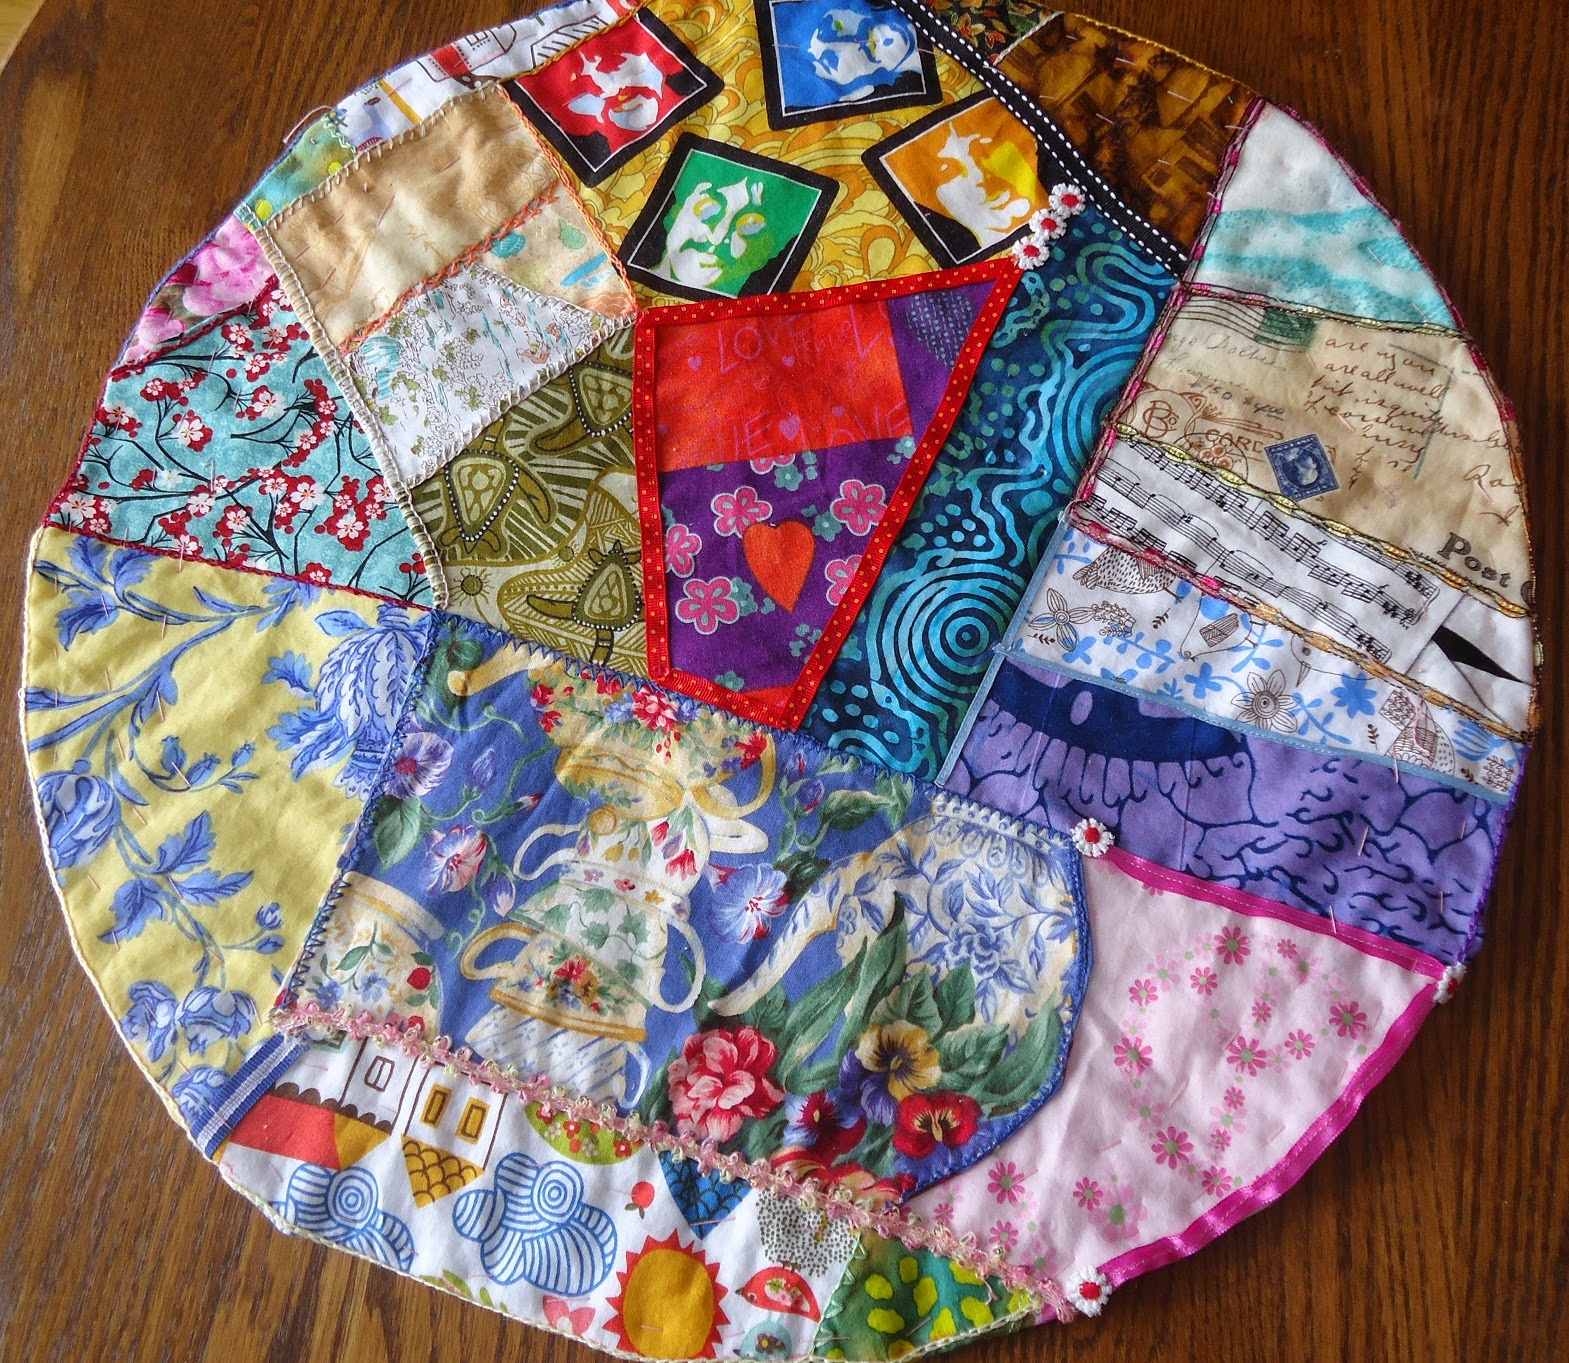 The world - crazy quilt style